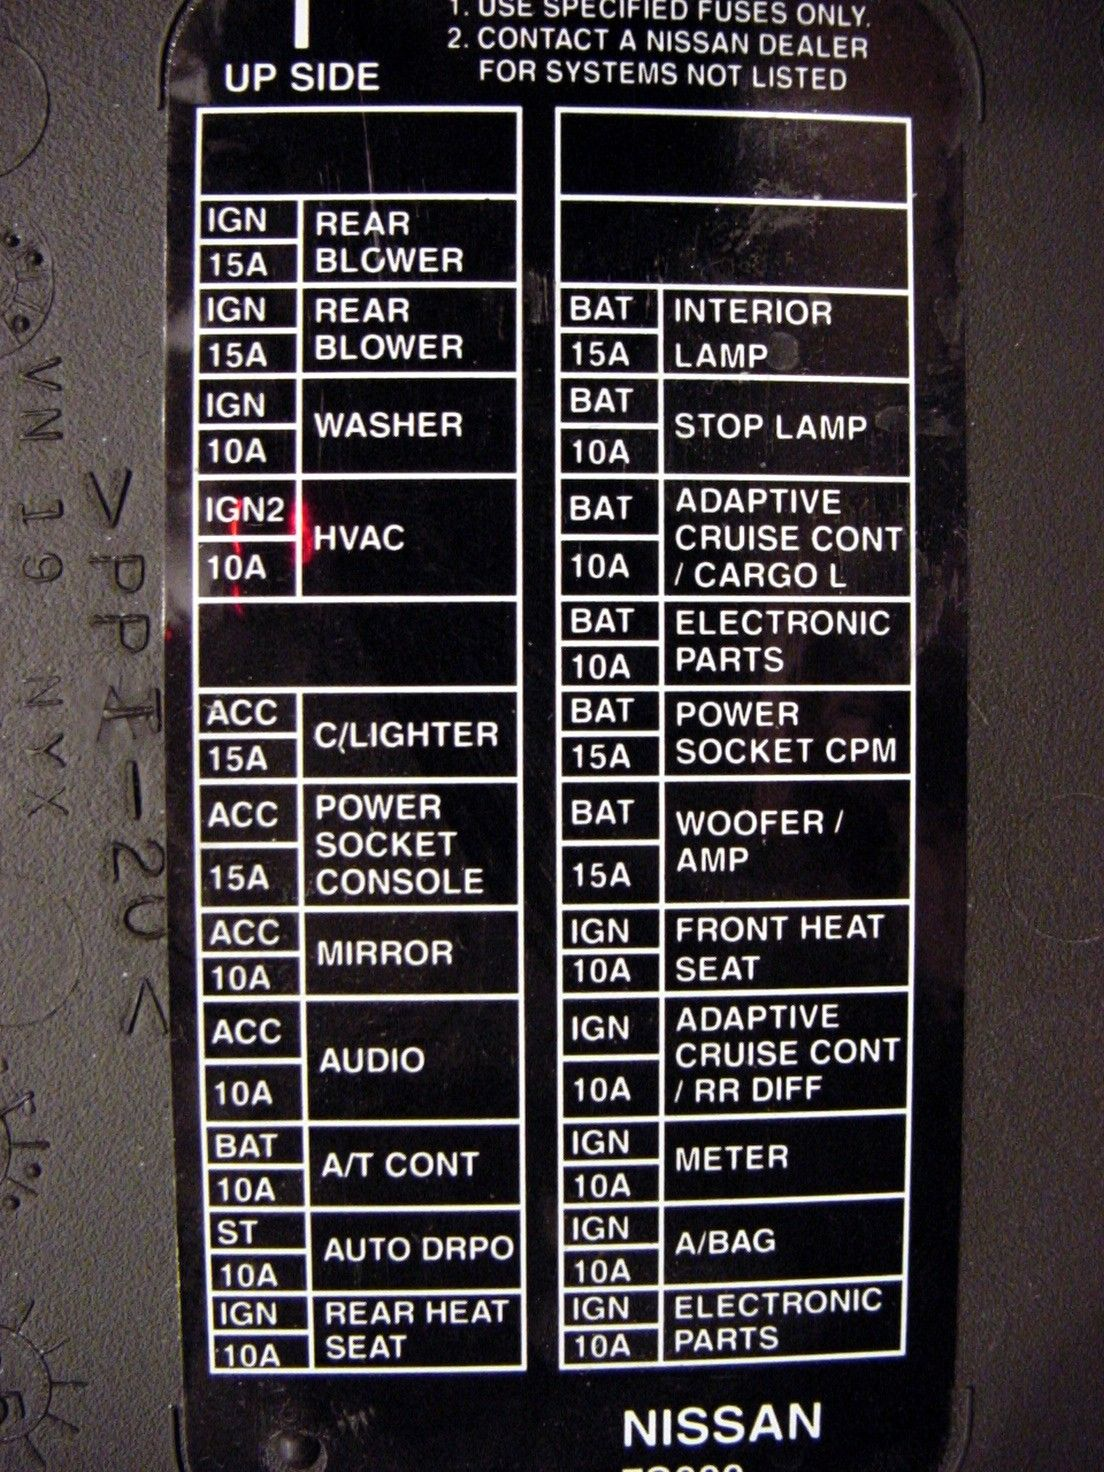 Nissan Titan Fuse Box Diagram 2004